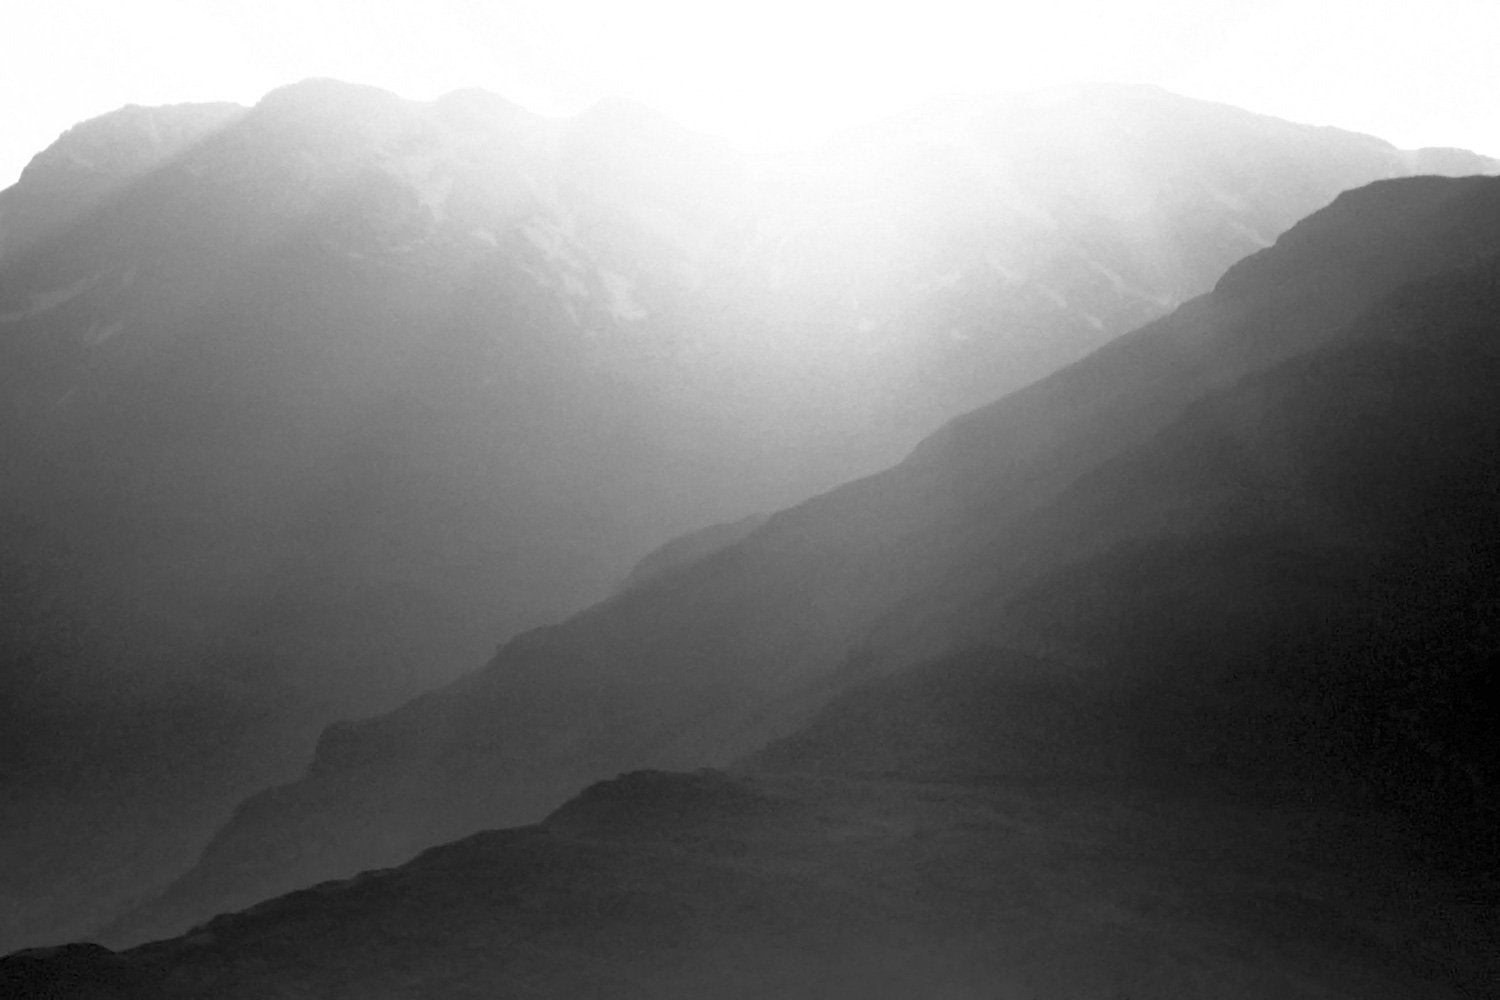 Black White Mountain Sunrise Wallpaper M9262 Digital Wallpaper